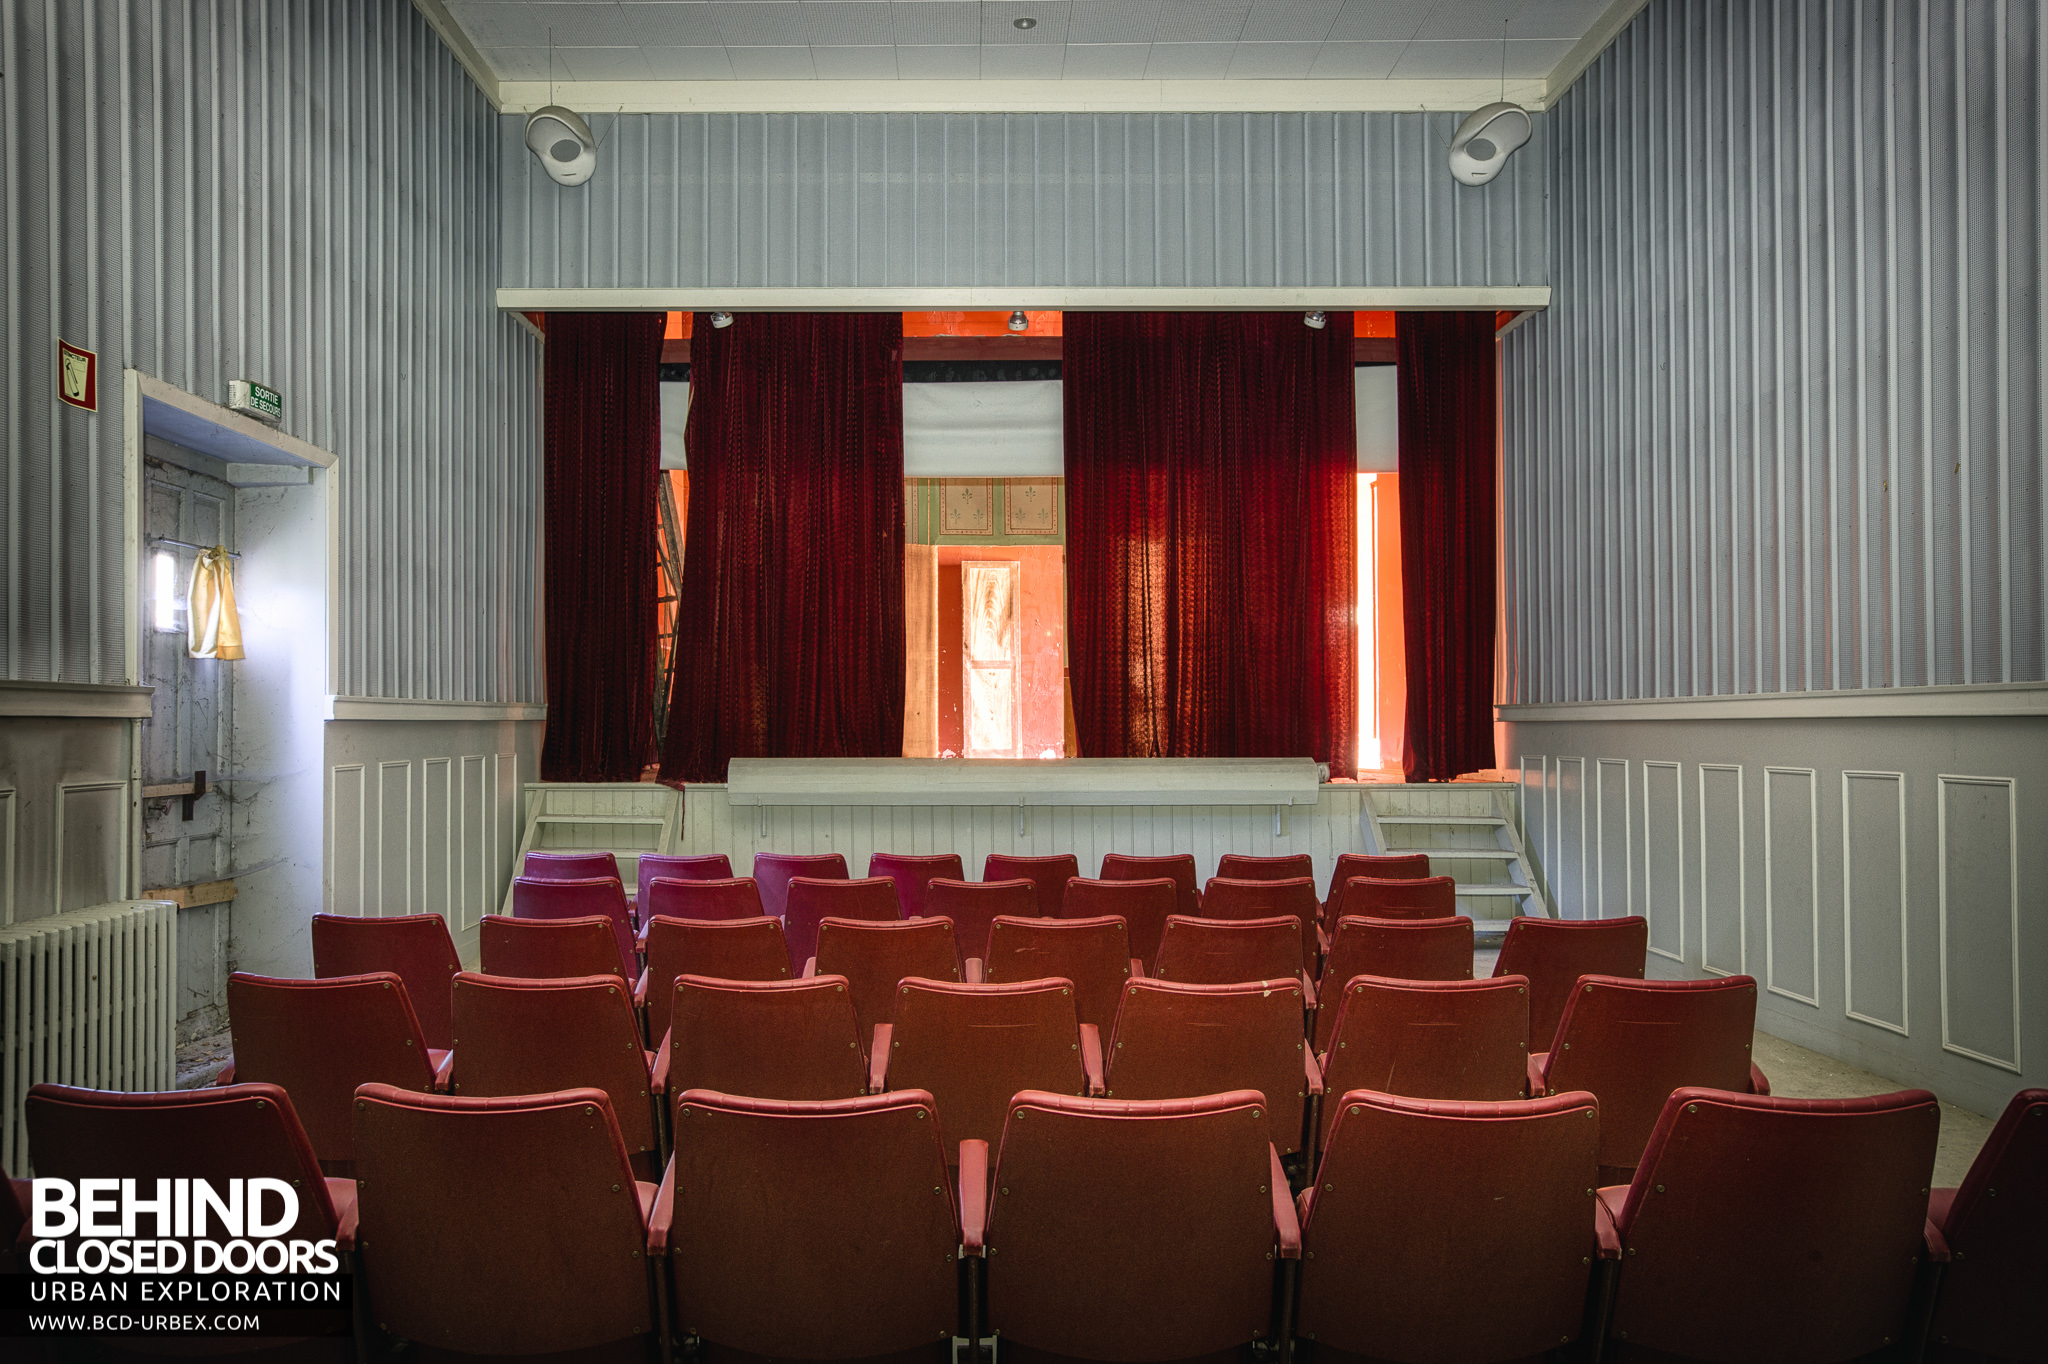 Hospital window curtains - Hospital Plaza Theatre With Red Seats And Curtain